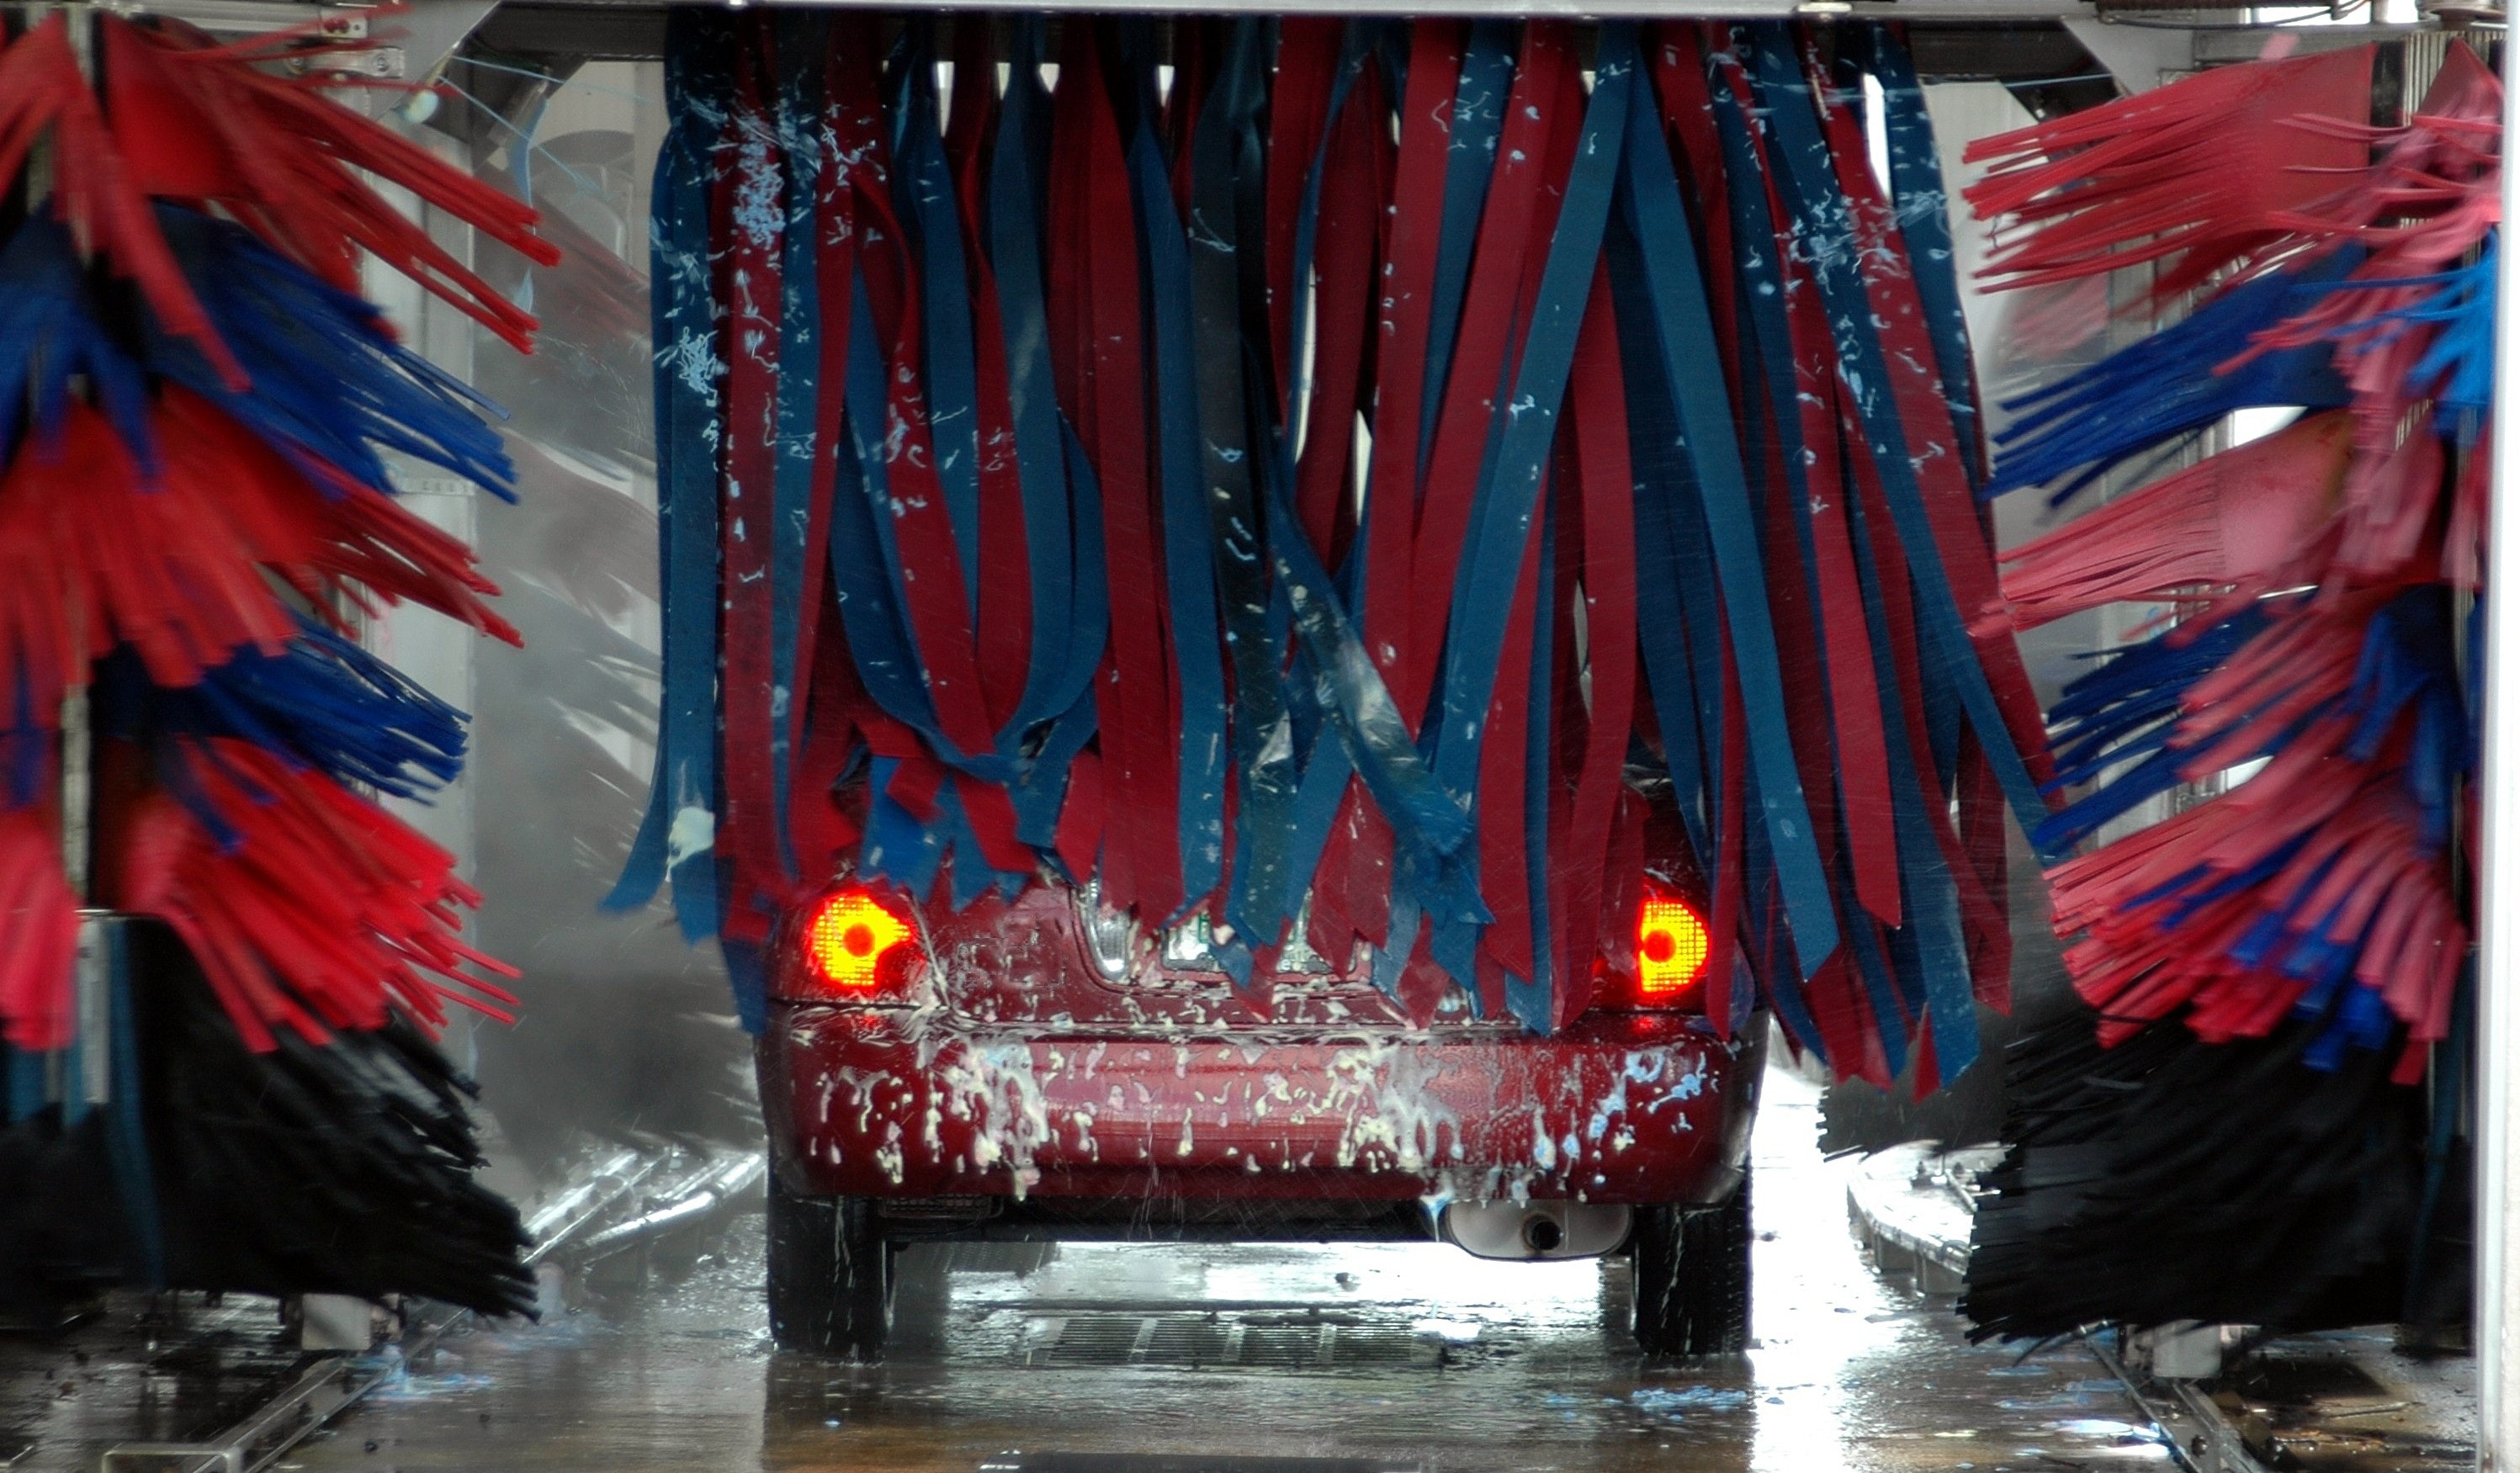 Red and Black Banner, Automobile, Business, Car, Car wash, HQ Photo